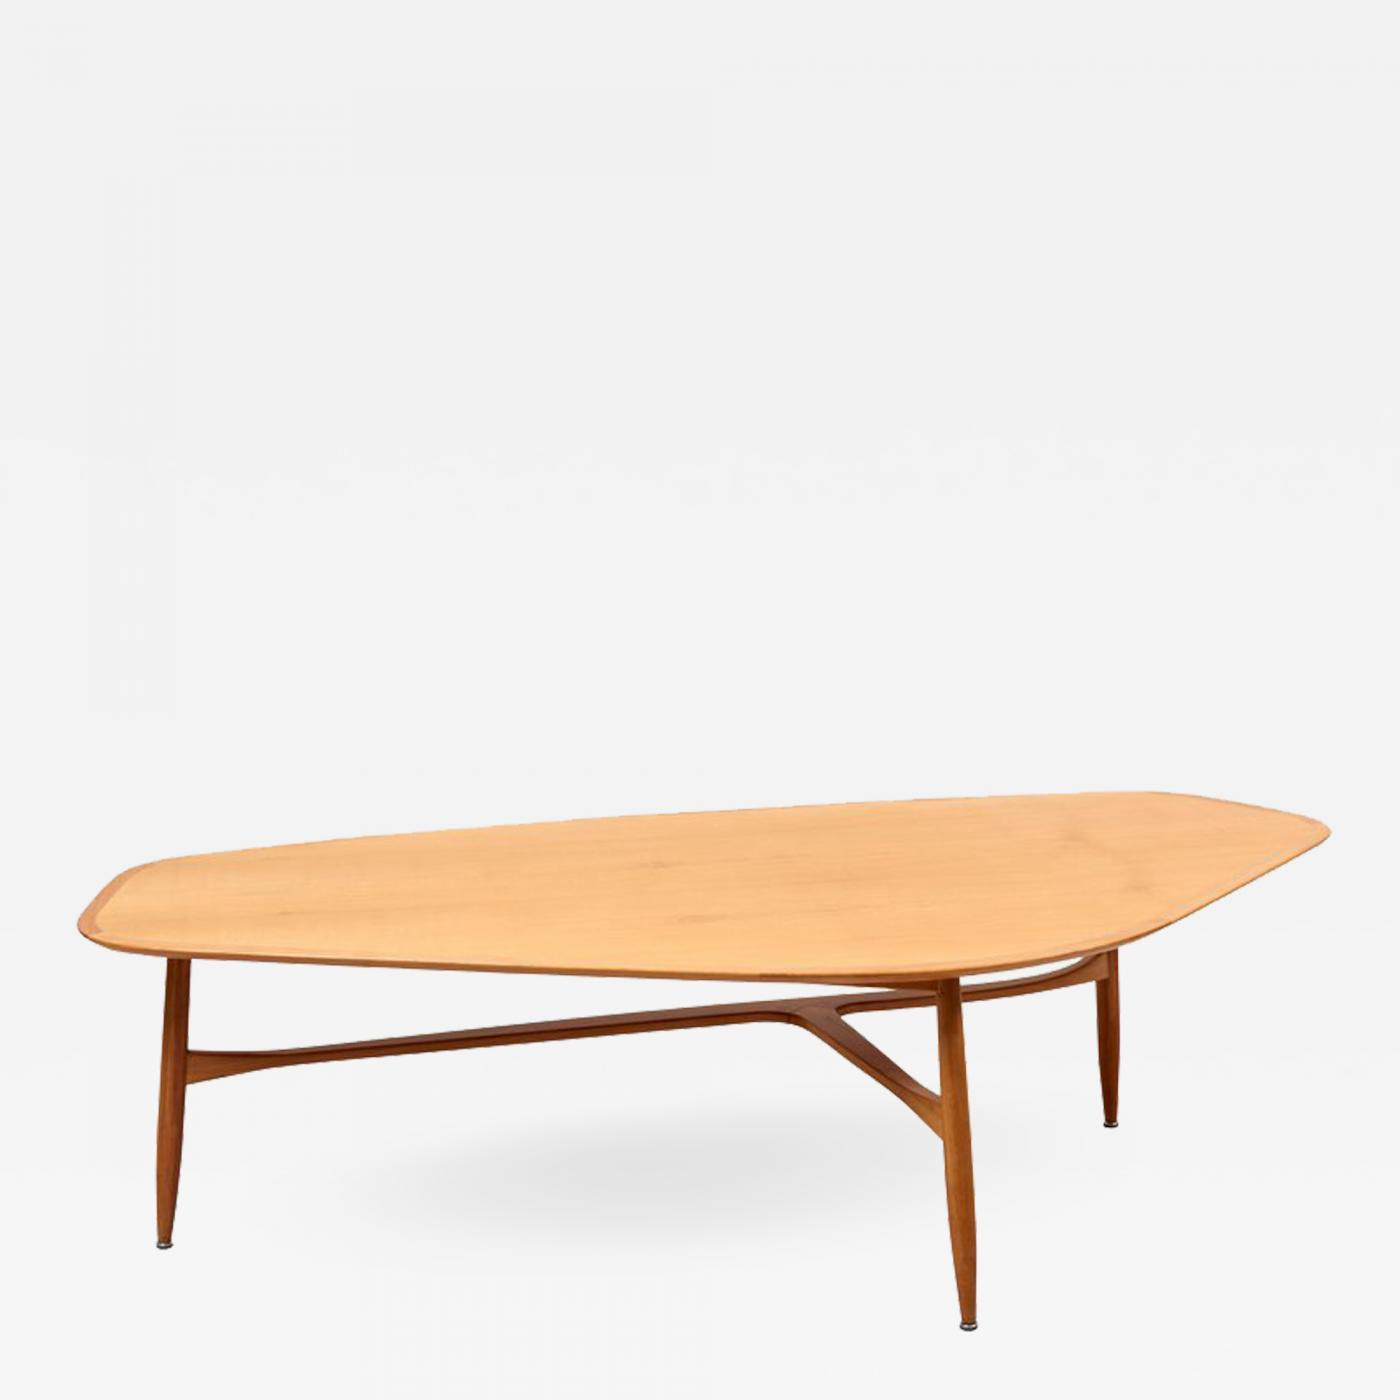 Awe Inspiring Svante Skogh Large Boomerang Shaped Coffee Table In Teak Wood By Svante Skogh For Laauser Evergreenethics Interior Chair Design Evergreenethicsorg